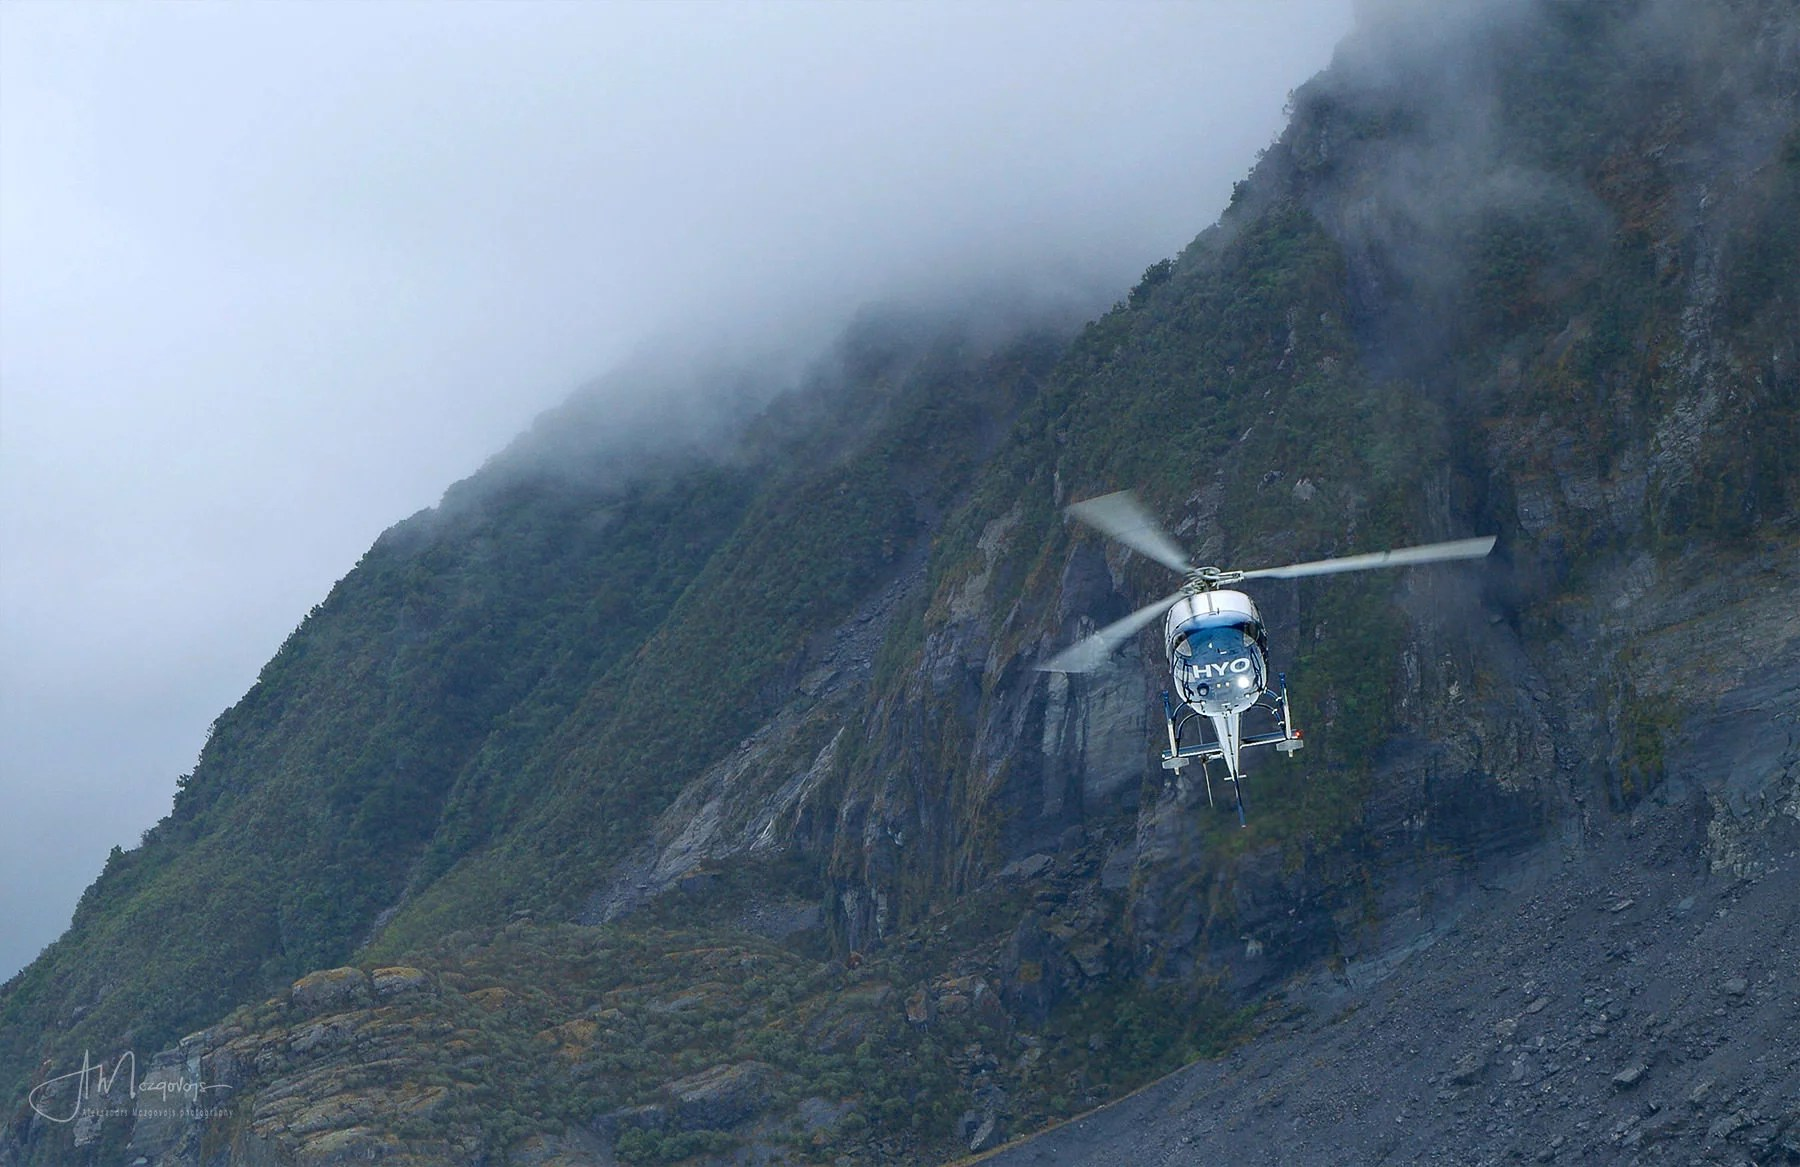 Helicopter Approaching Fox Glacier, New Zealand